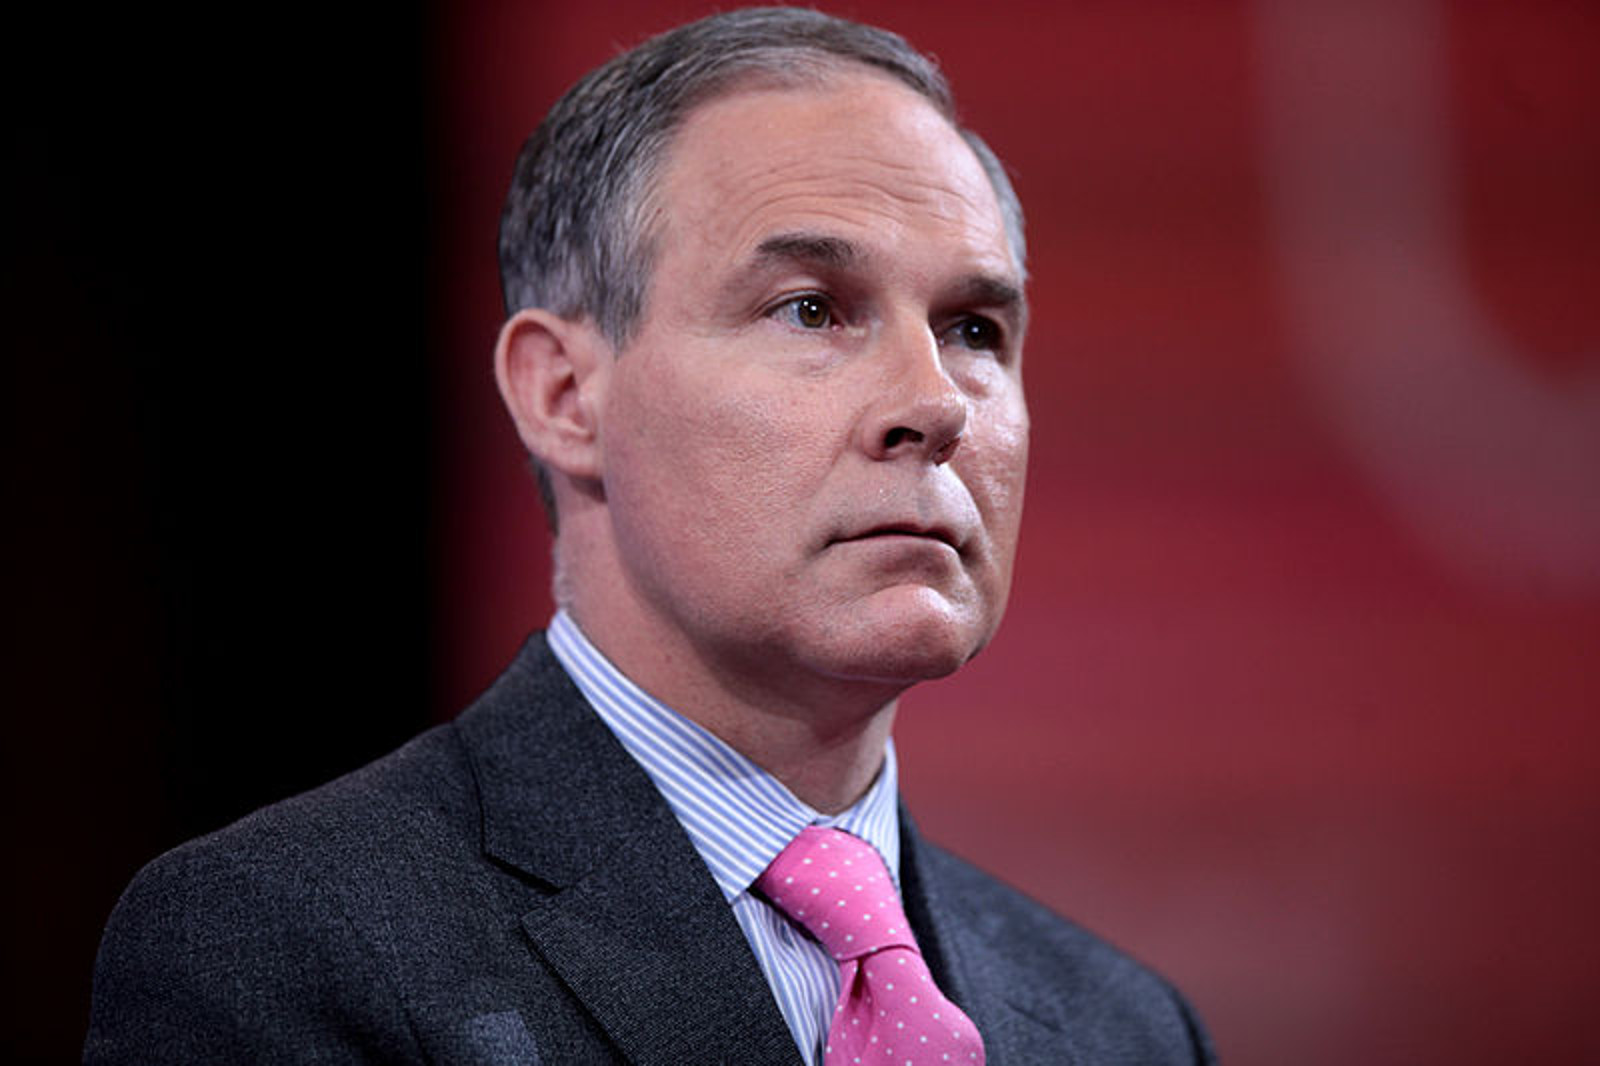 Scott Pruitt is Hiding Thousands of Emails About His Energy Ties – Another Reason He Should NOT Head the EPA